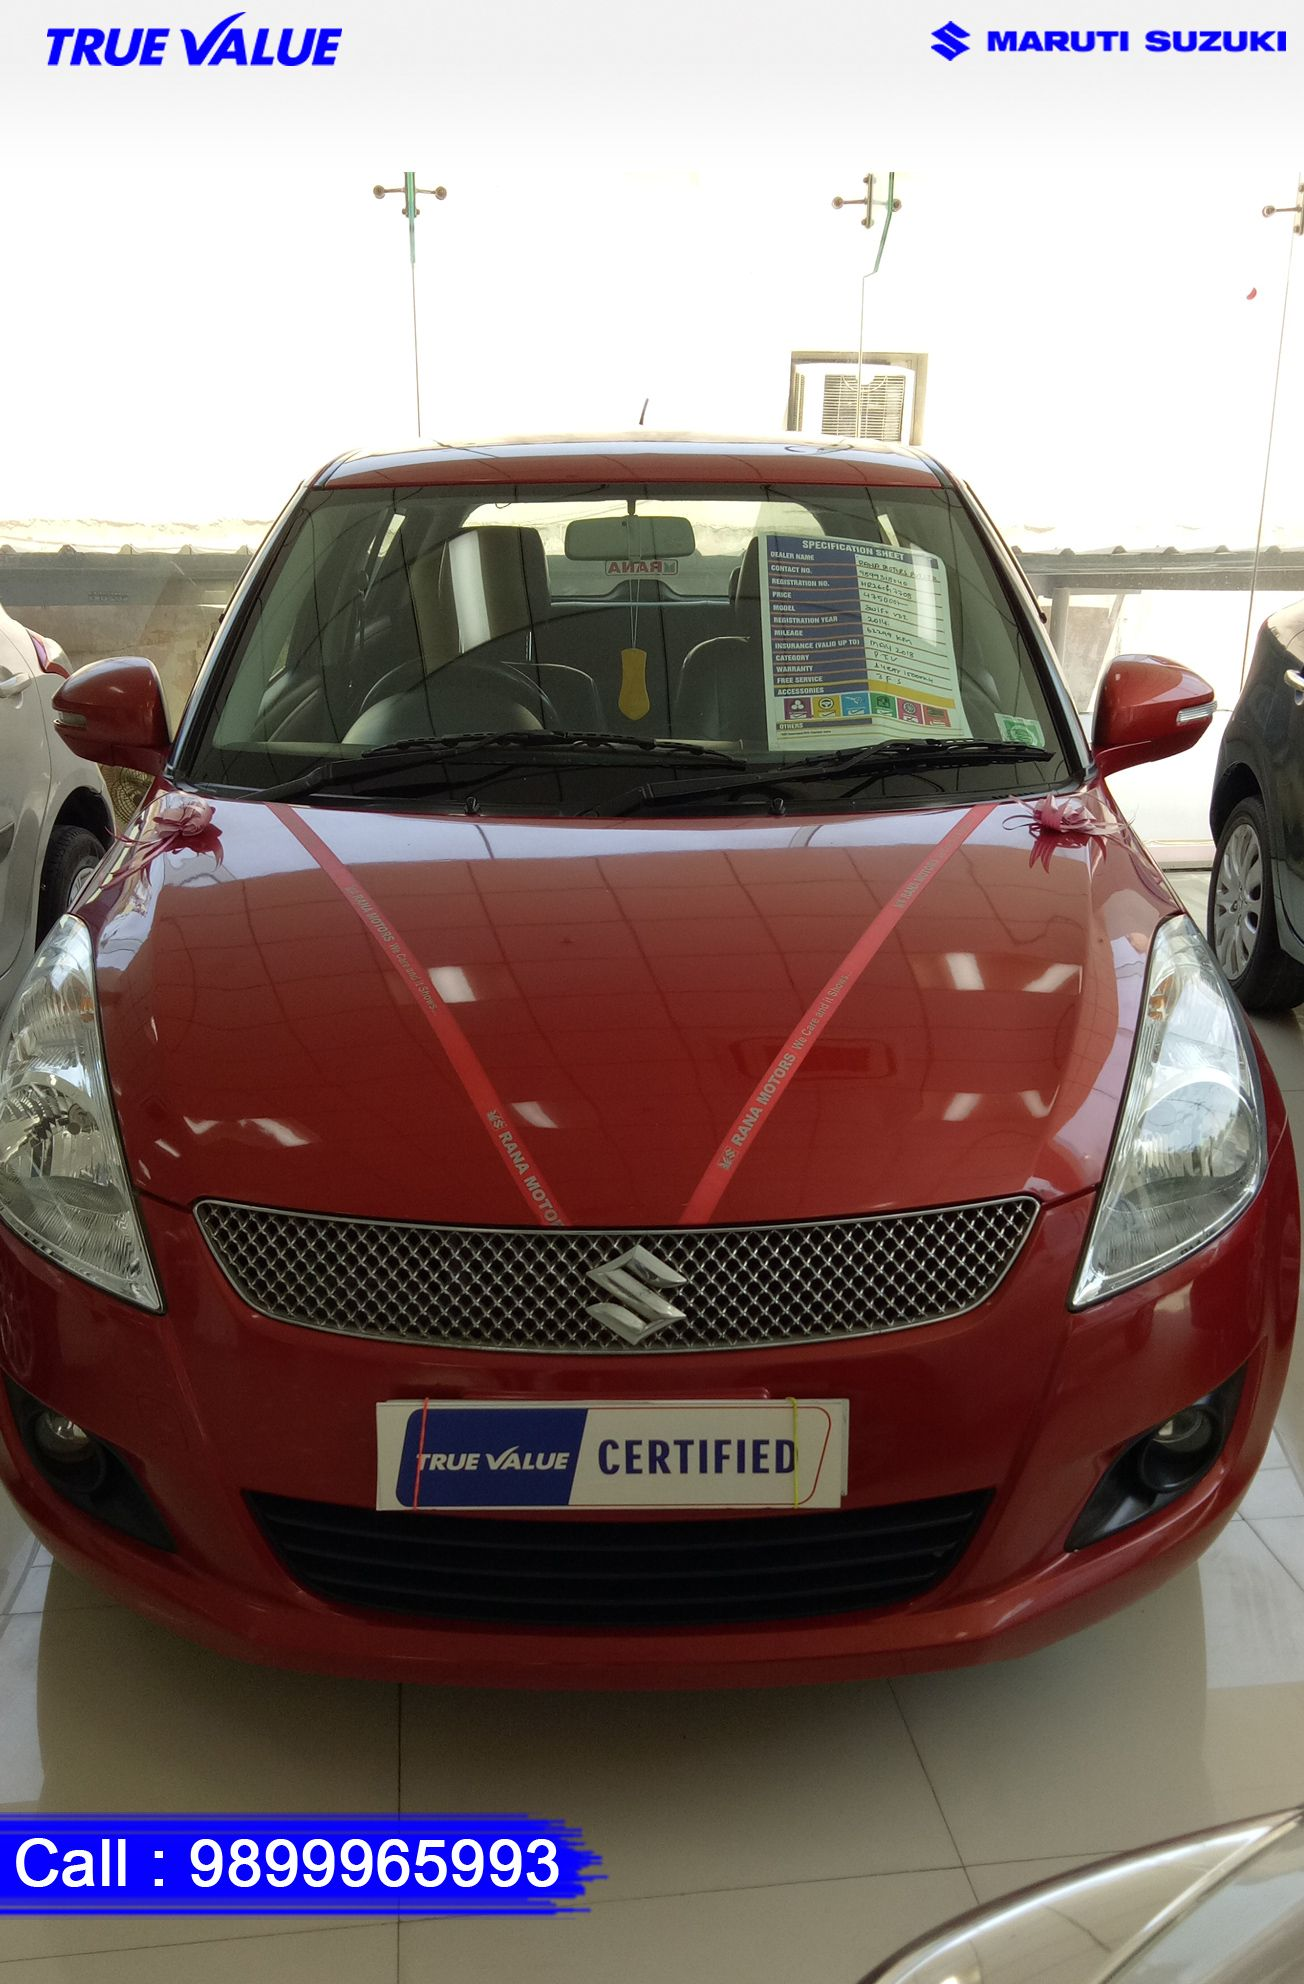 Make : Maruti Suzuki Model : Swift Variant : VDI Year : 2014